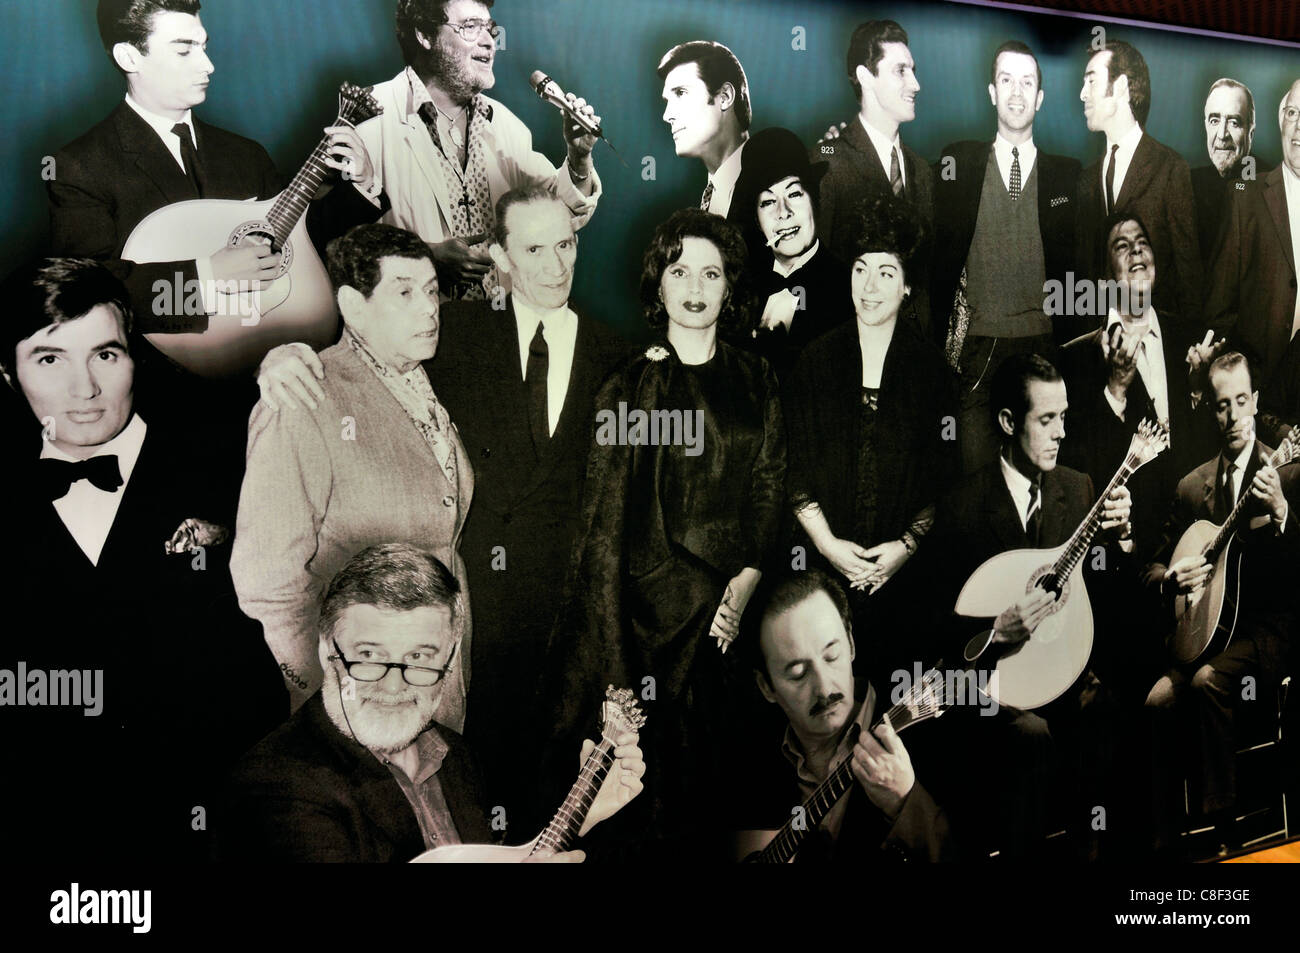 Portugal, Lisbon: Photographic wall collage  with famous Fado artists in the Museu do Fado - Stock Image